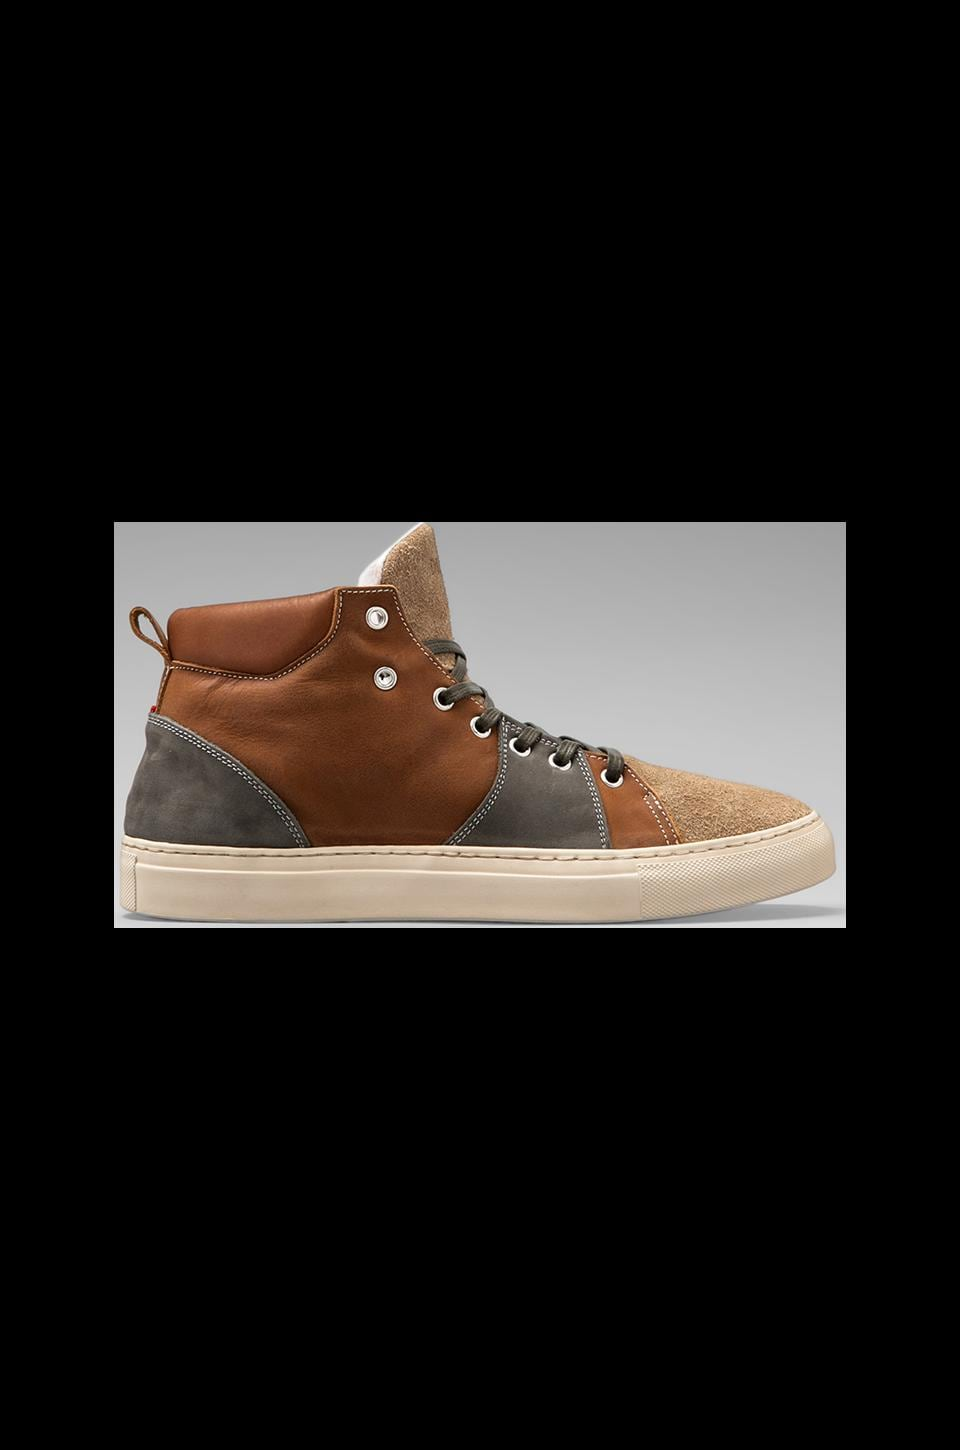 Diemme Parioli Hi Top Sneaker in Cognac